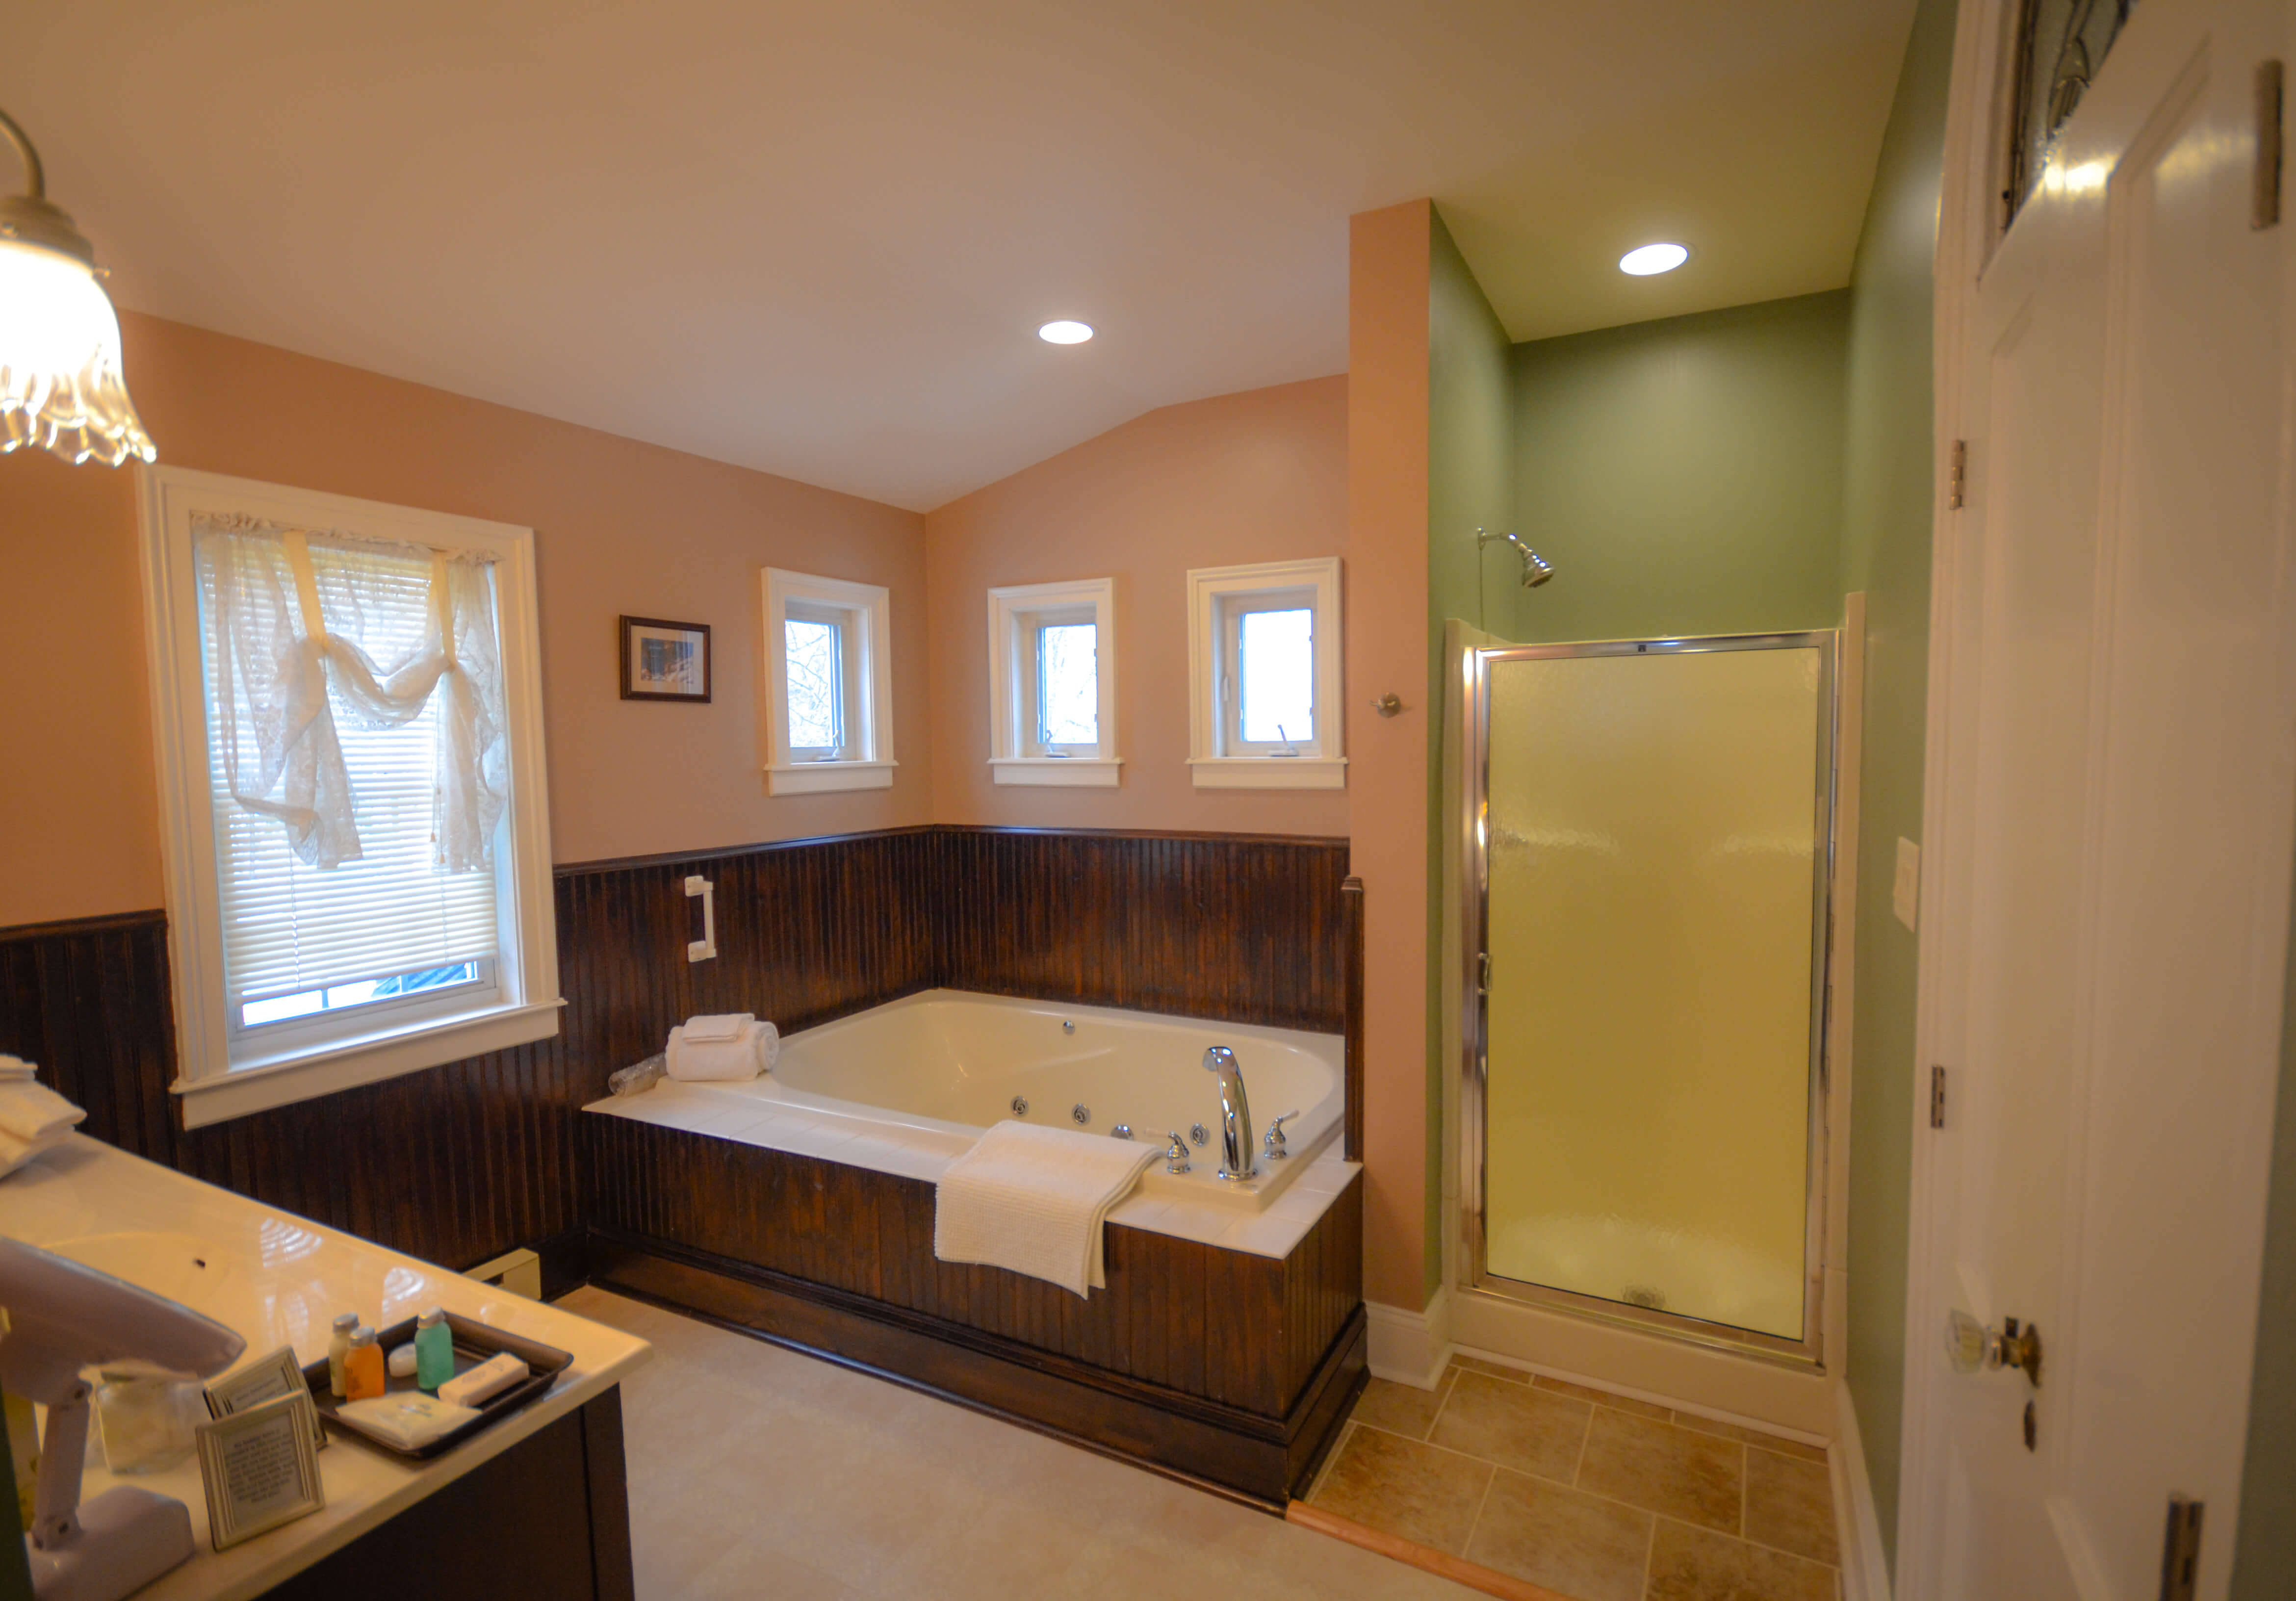 Traveler's Retreat Bathroom - Waypoint House B+B